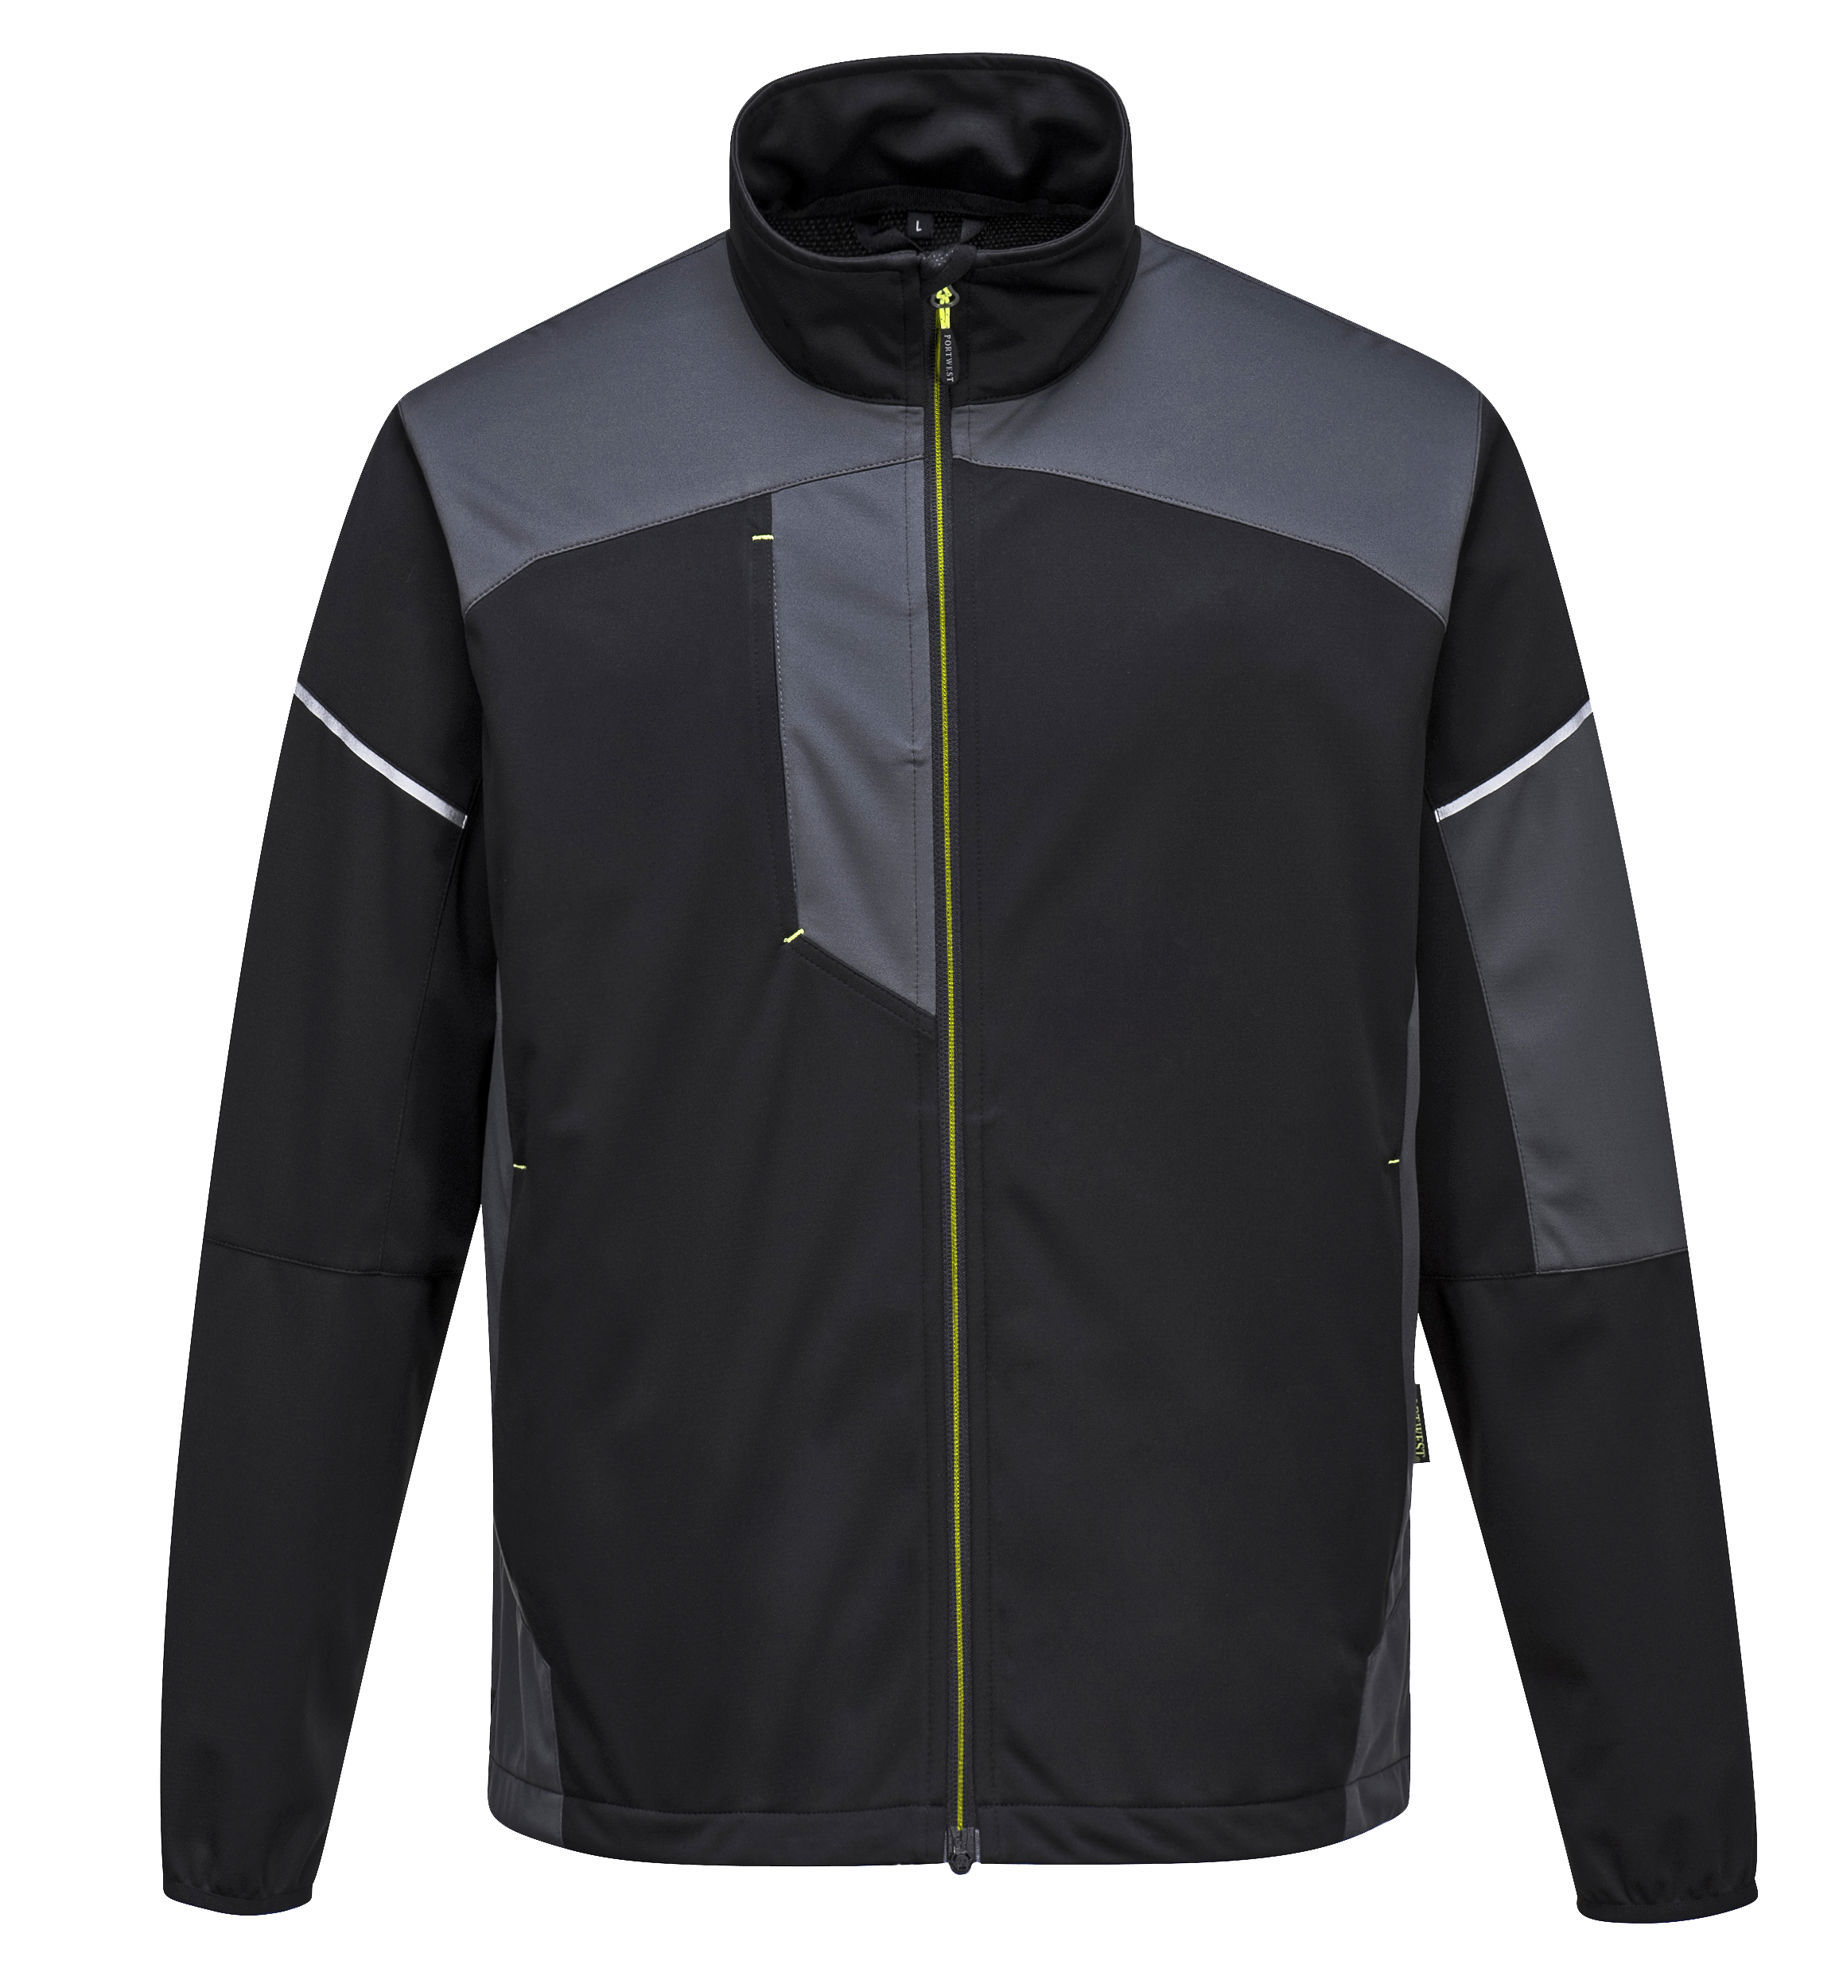 Picture of Portwest T620 - PW3 Flex Shell Jacket Black/Zoom Grey